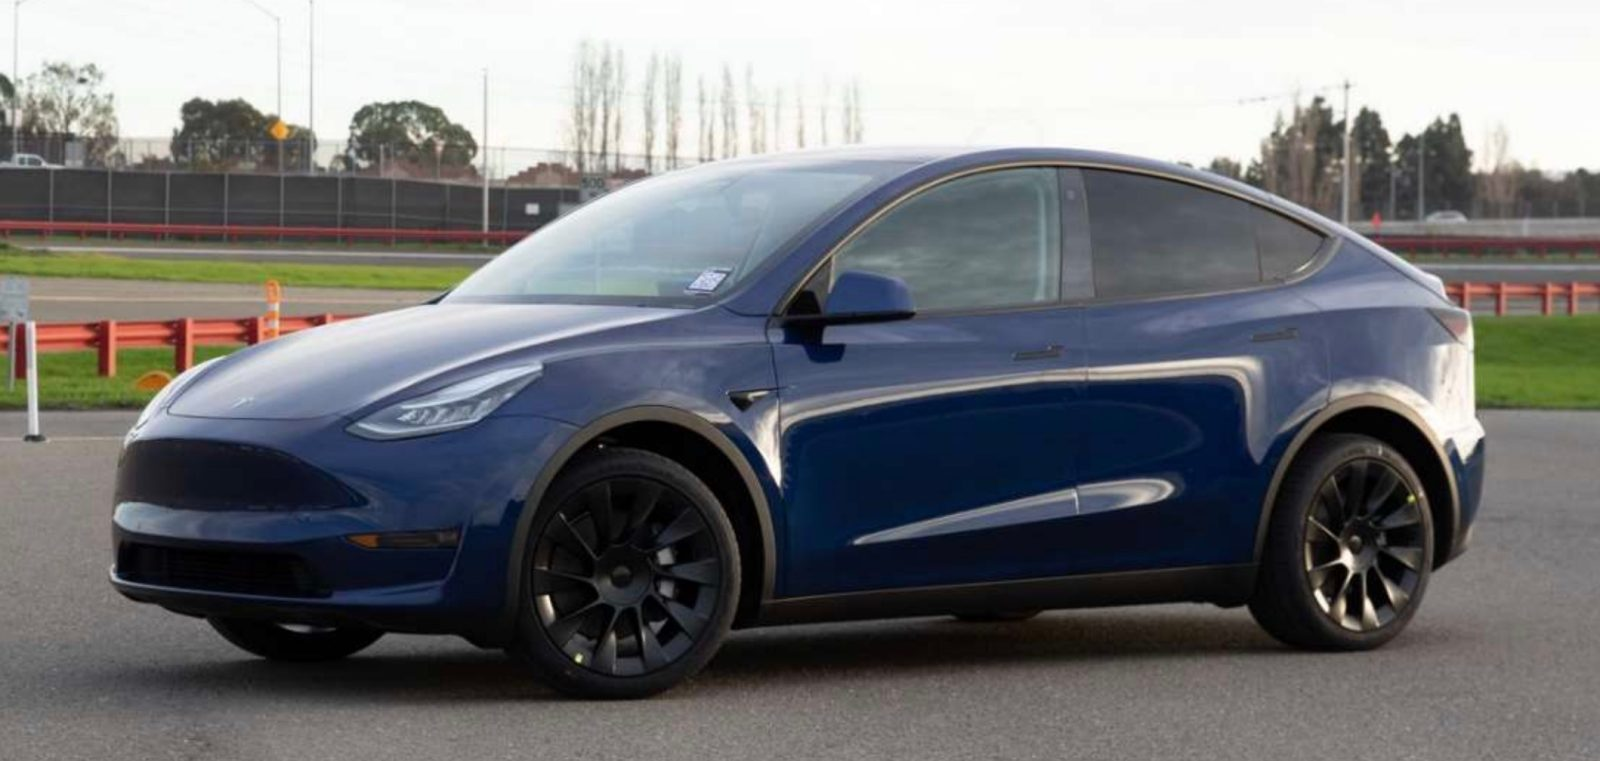 Tesla Model Y gets official 315-mile EPA range, becomes most efficient SUV ever